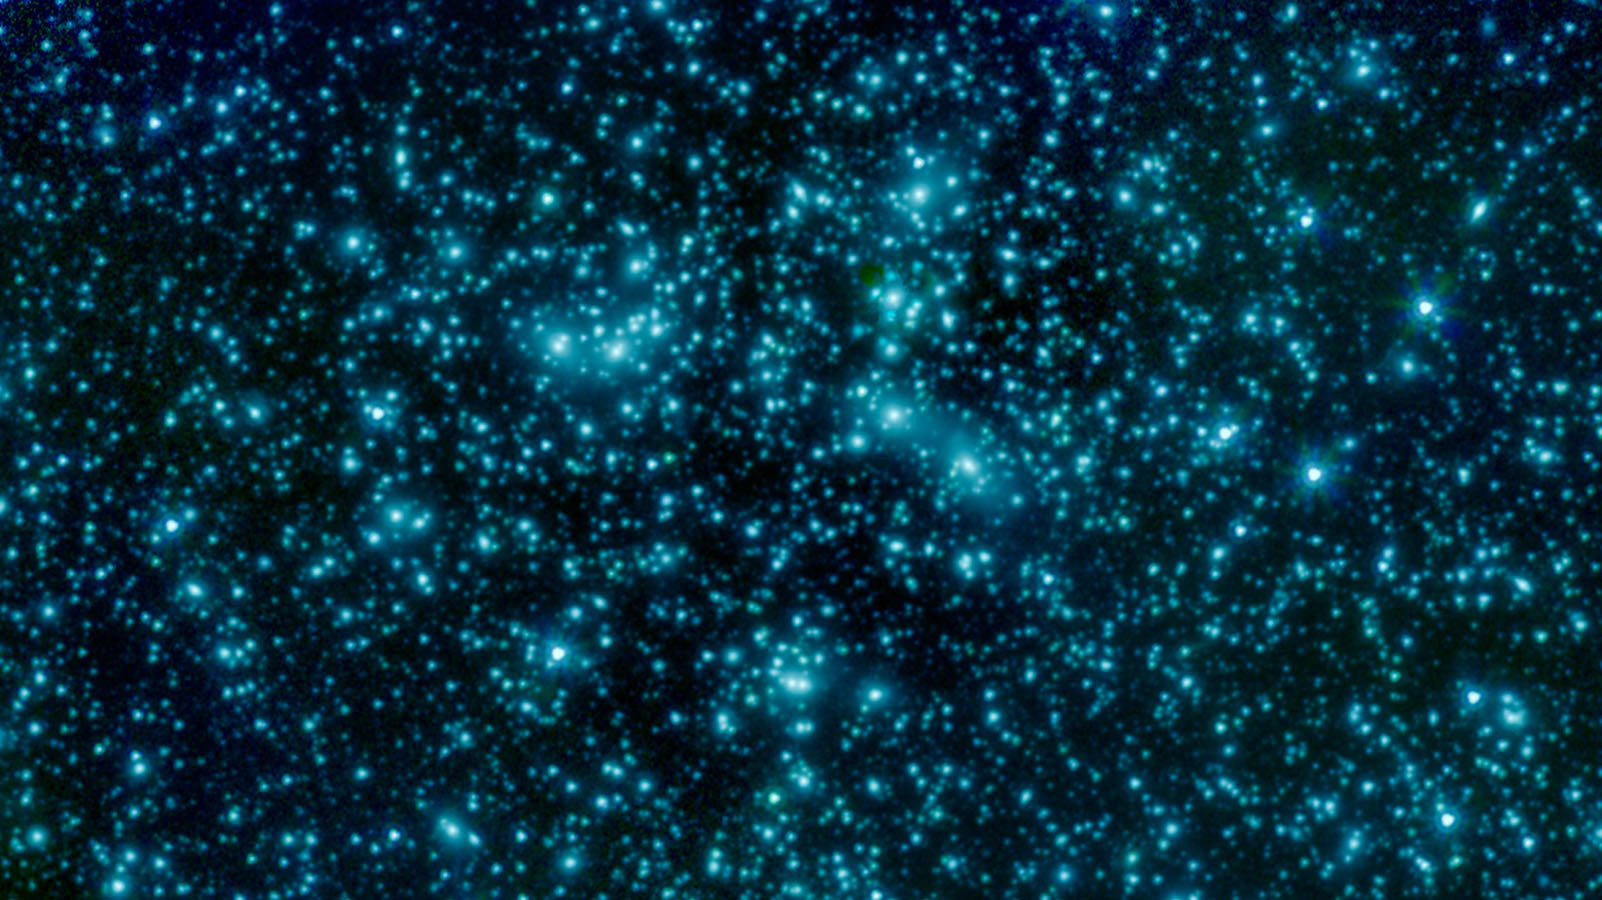 This image of galaxy cluster Abell 2744, also called Pandora's Cluster, was taken by NASA's Spitzer Space Telescope. The cluster is also being studied by the NASA/ESA Hubble Space Telescope and Chandra X-Ray Observatory in a collaboration called the Frontier Fields project. Image credit:NASA/JPL-Caltech.